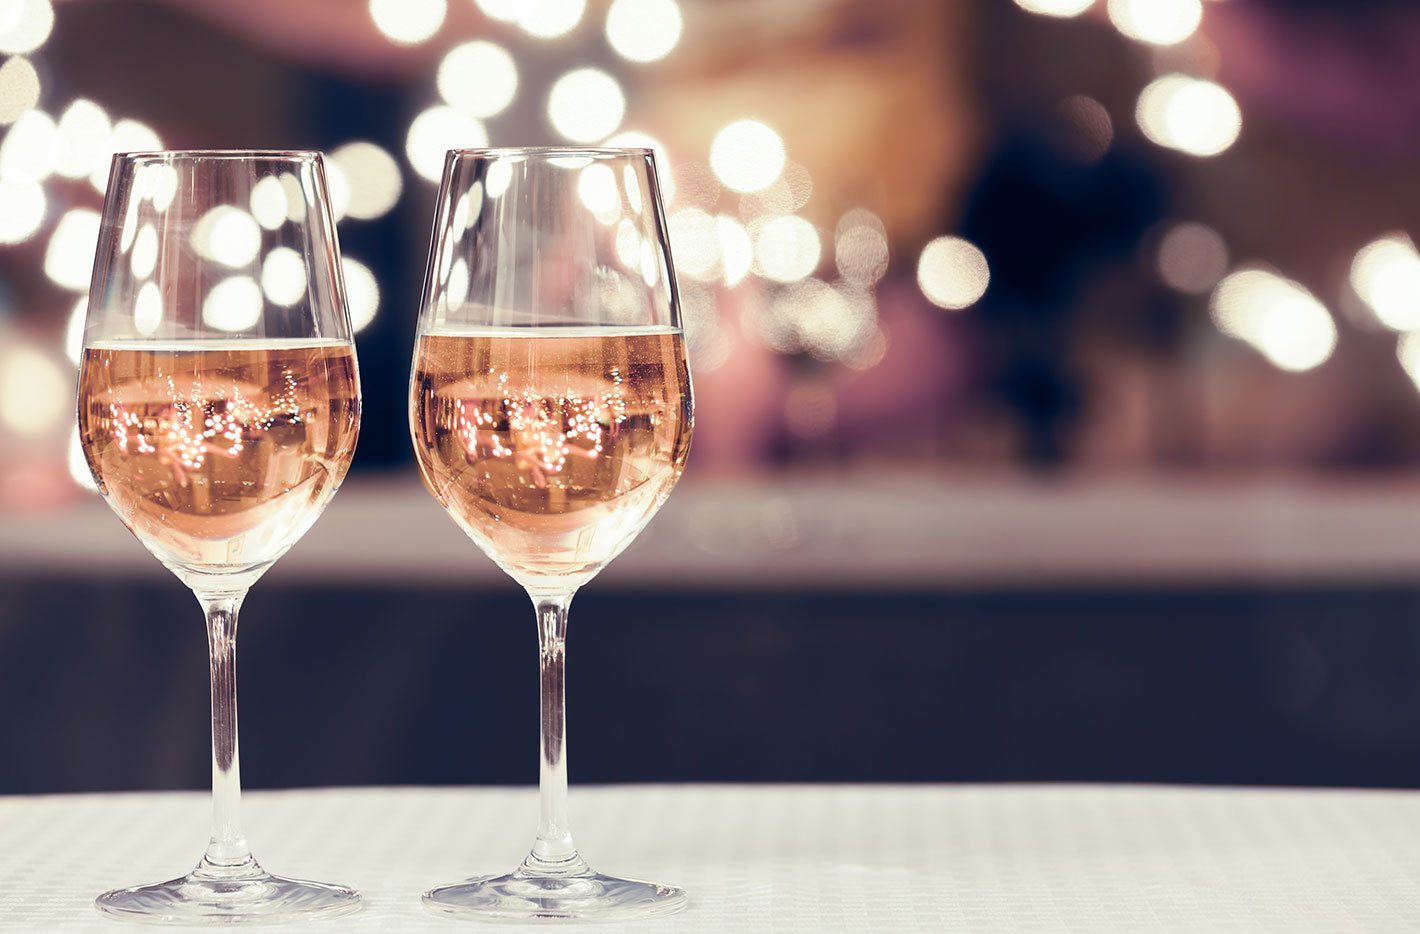 Wine glass with rose